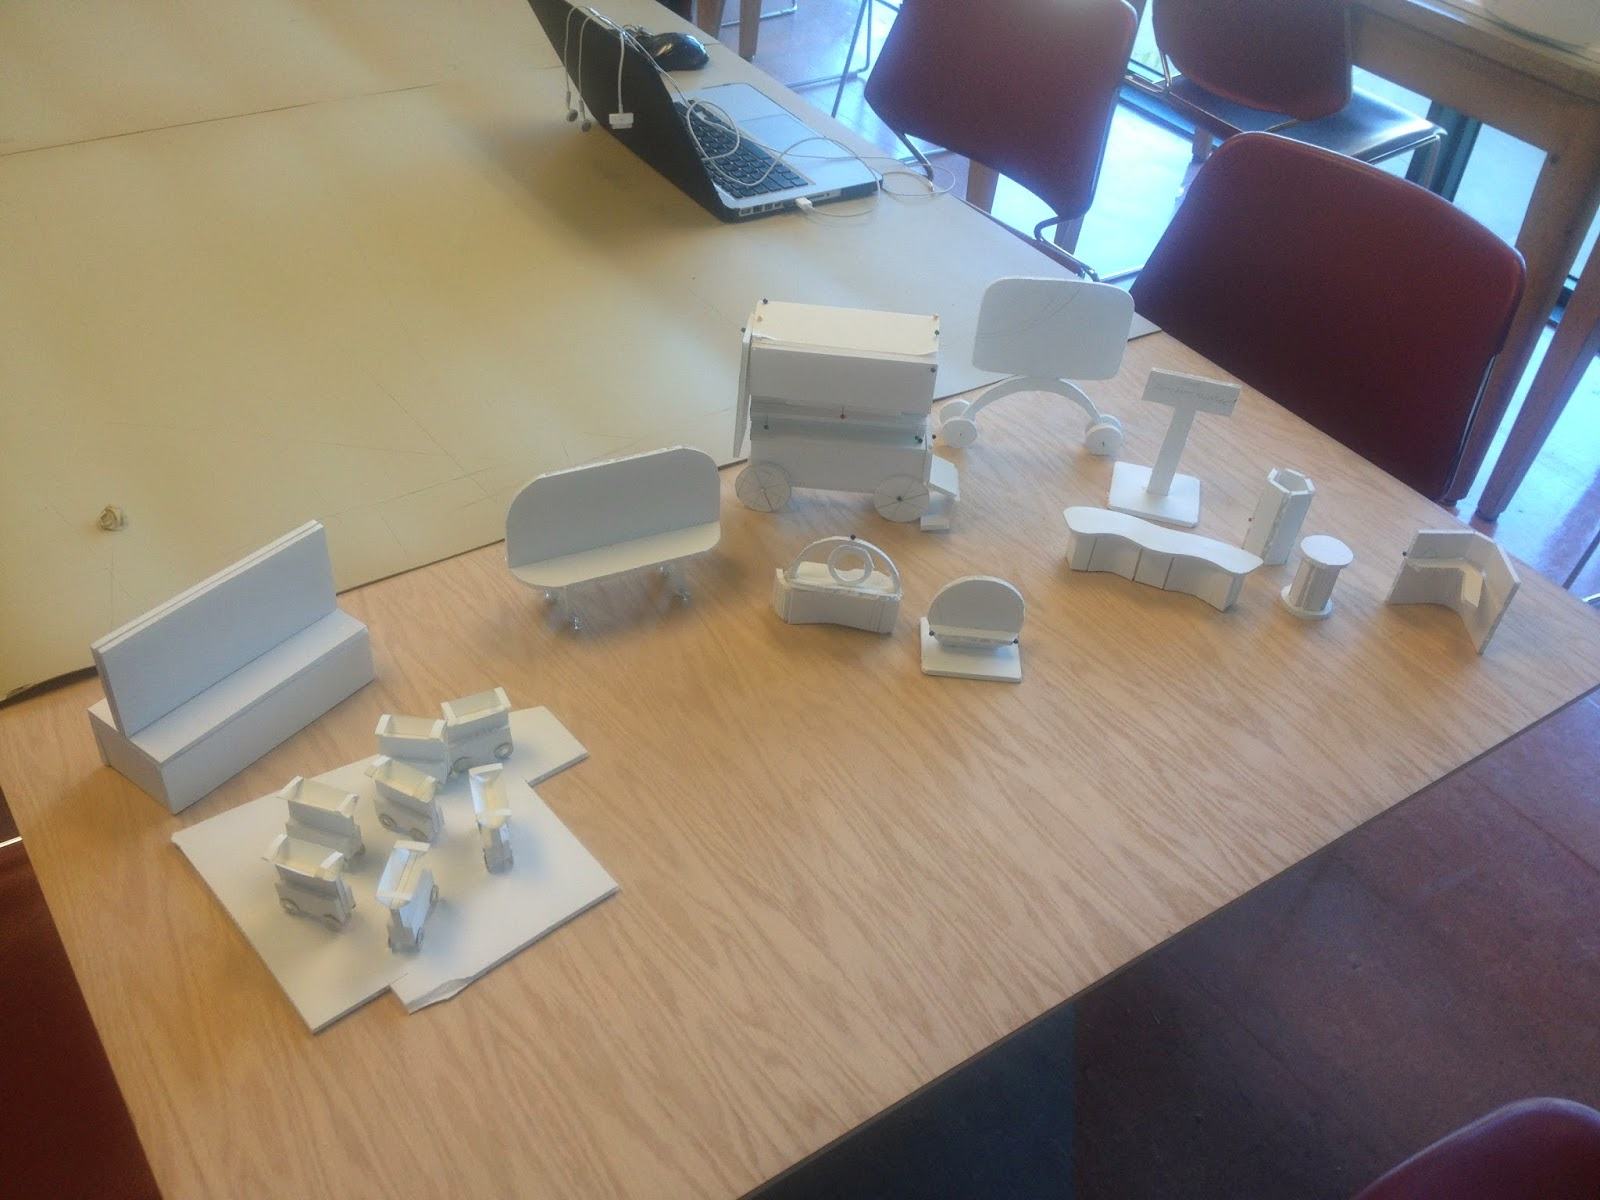 A collection of foam core model mockups are distributed on a table.